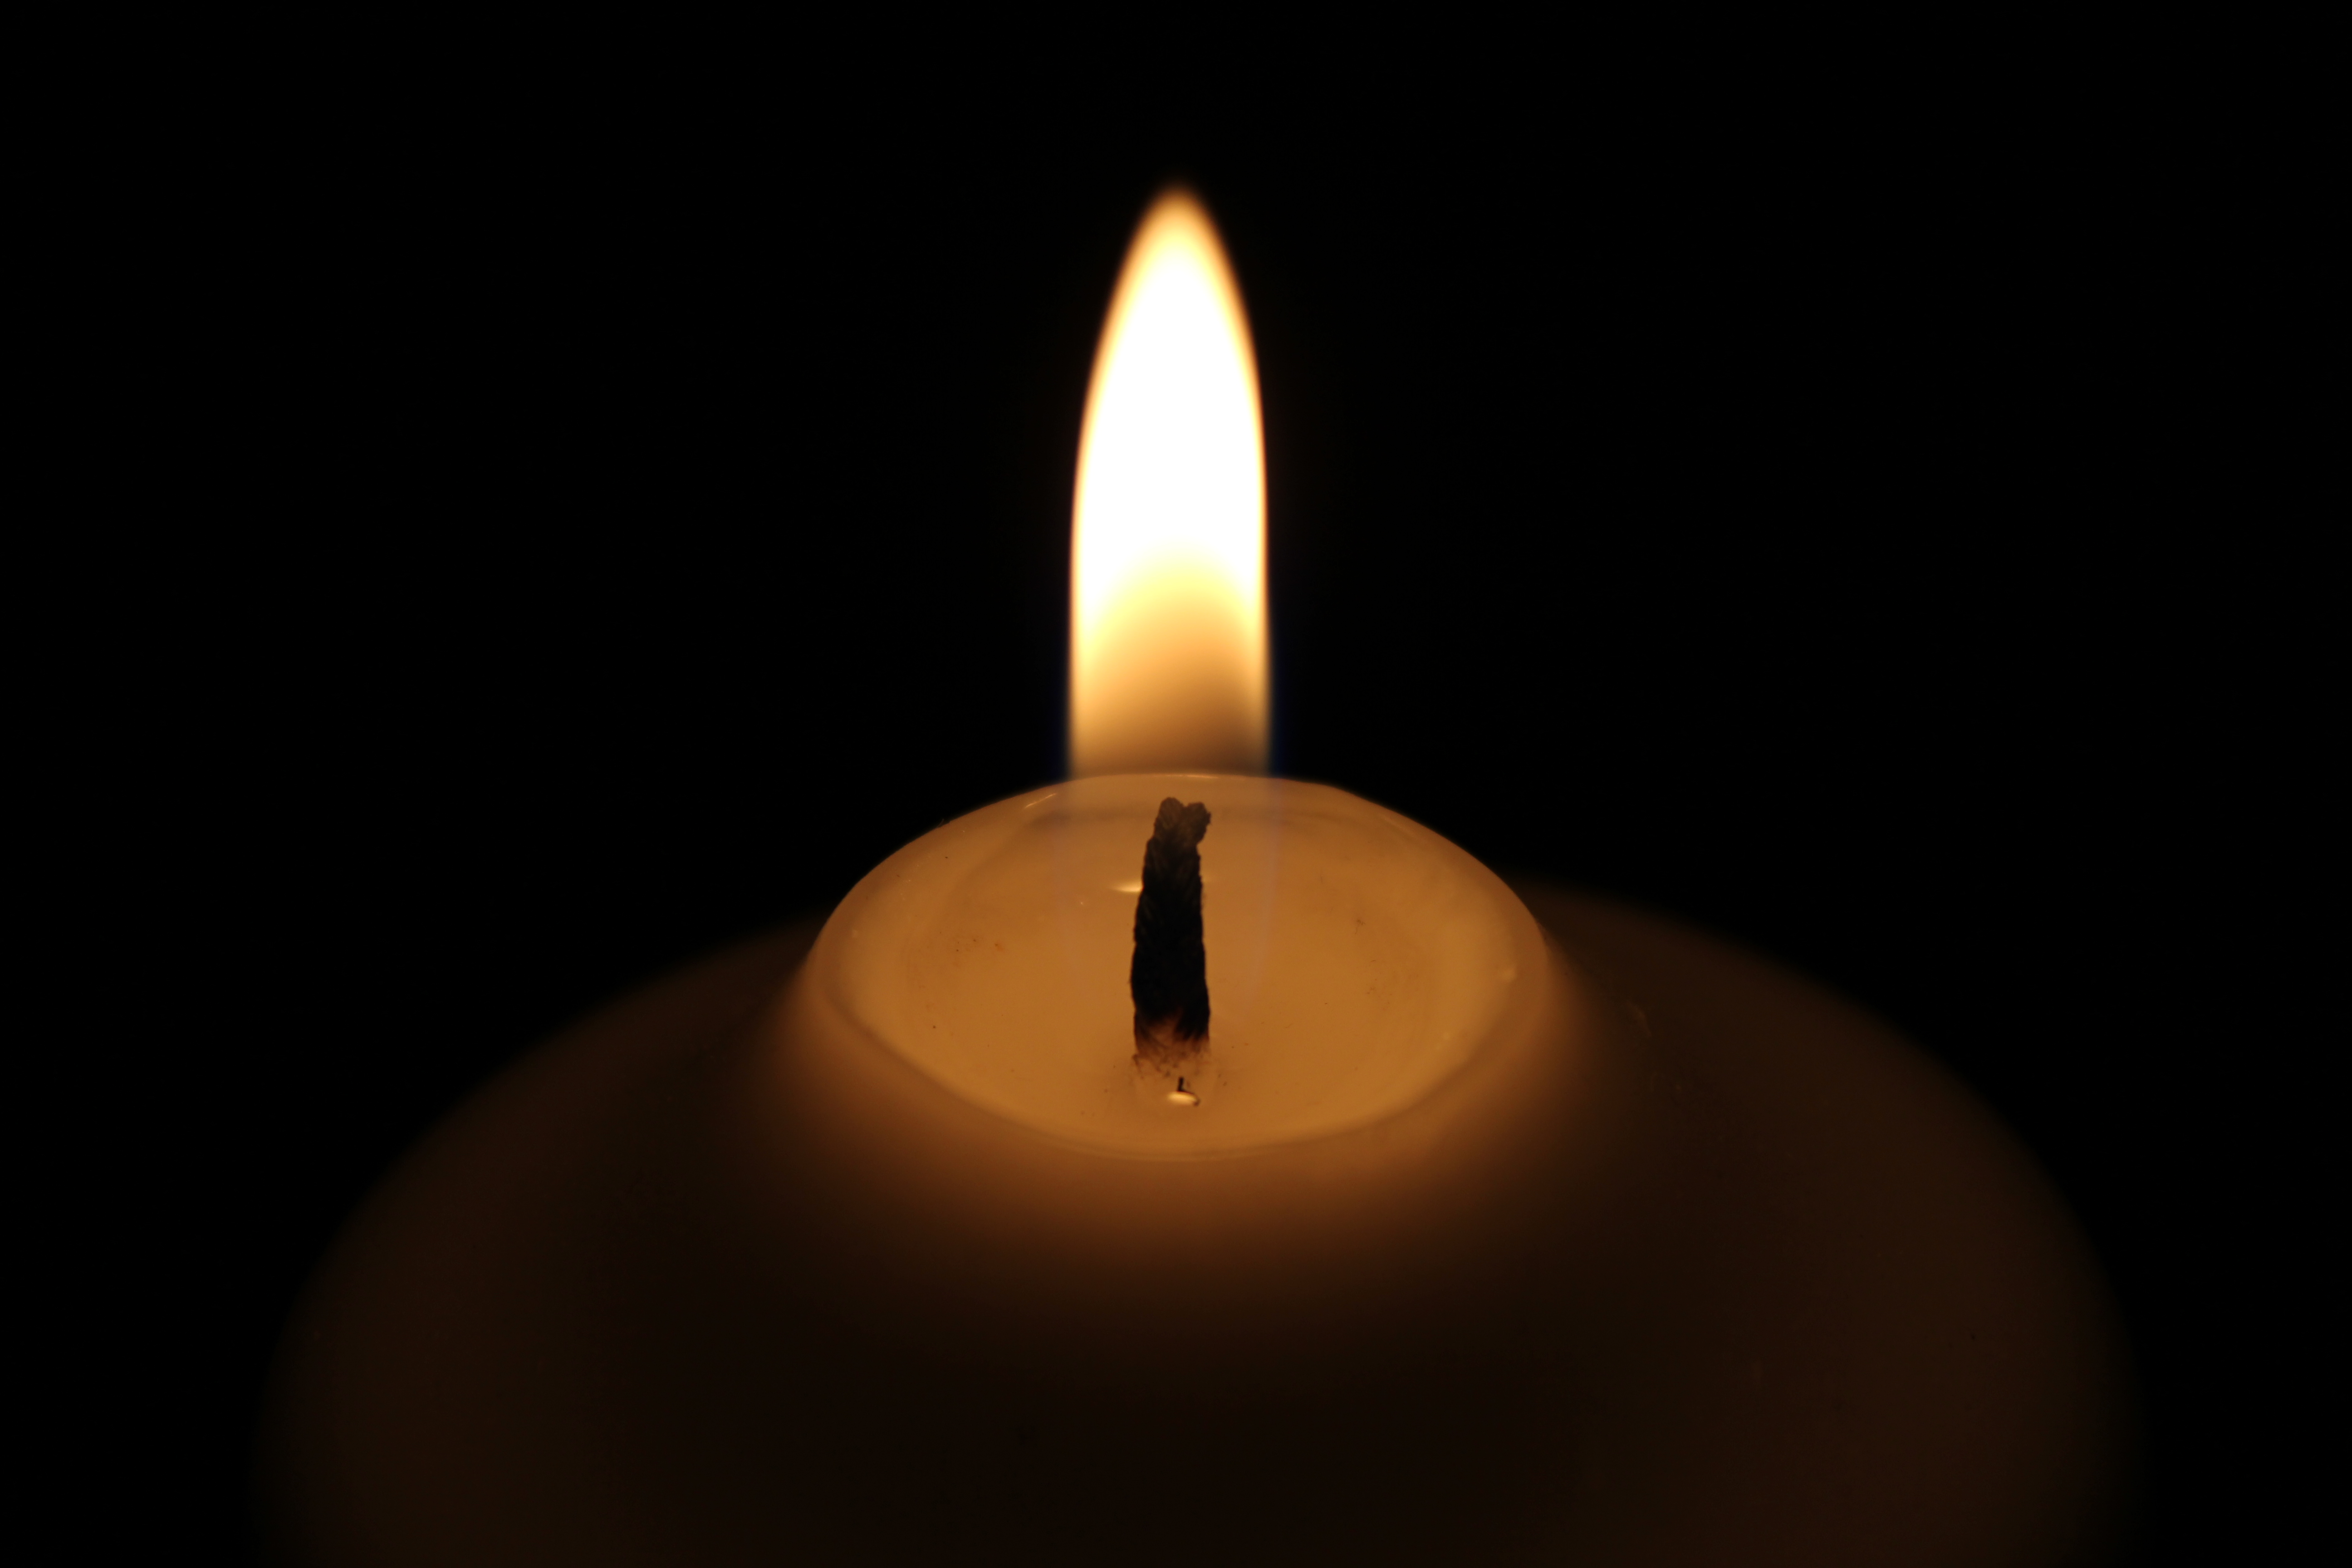 candle_in_the_dark_by_barkingbeagle-d33vdew